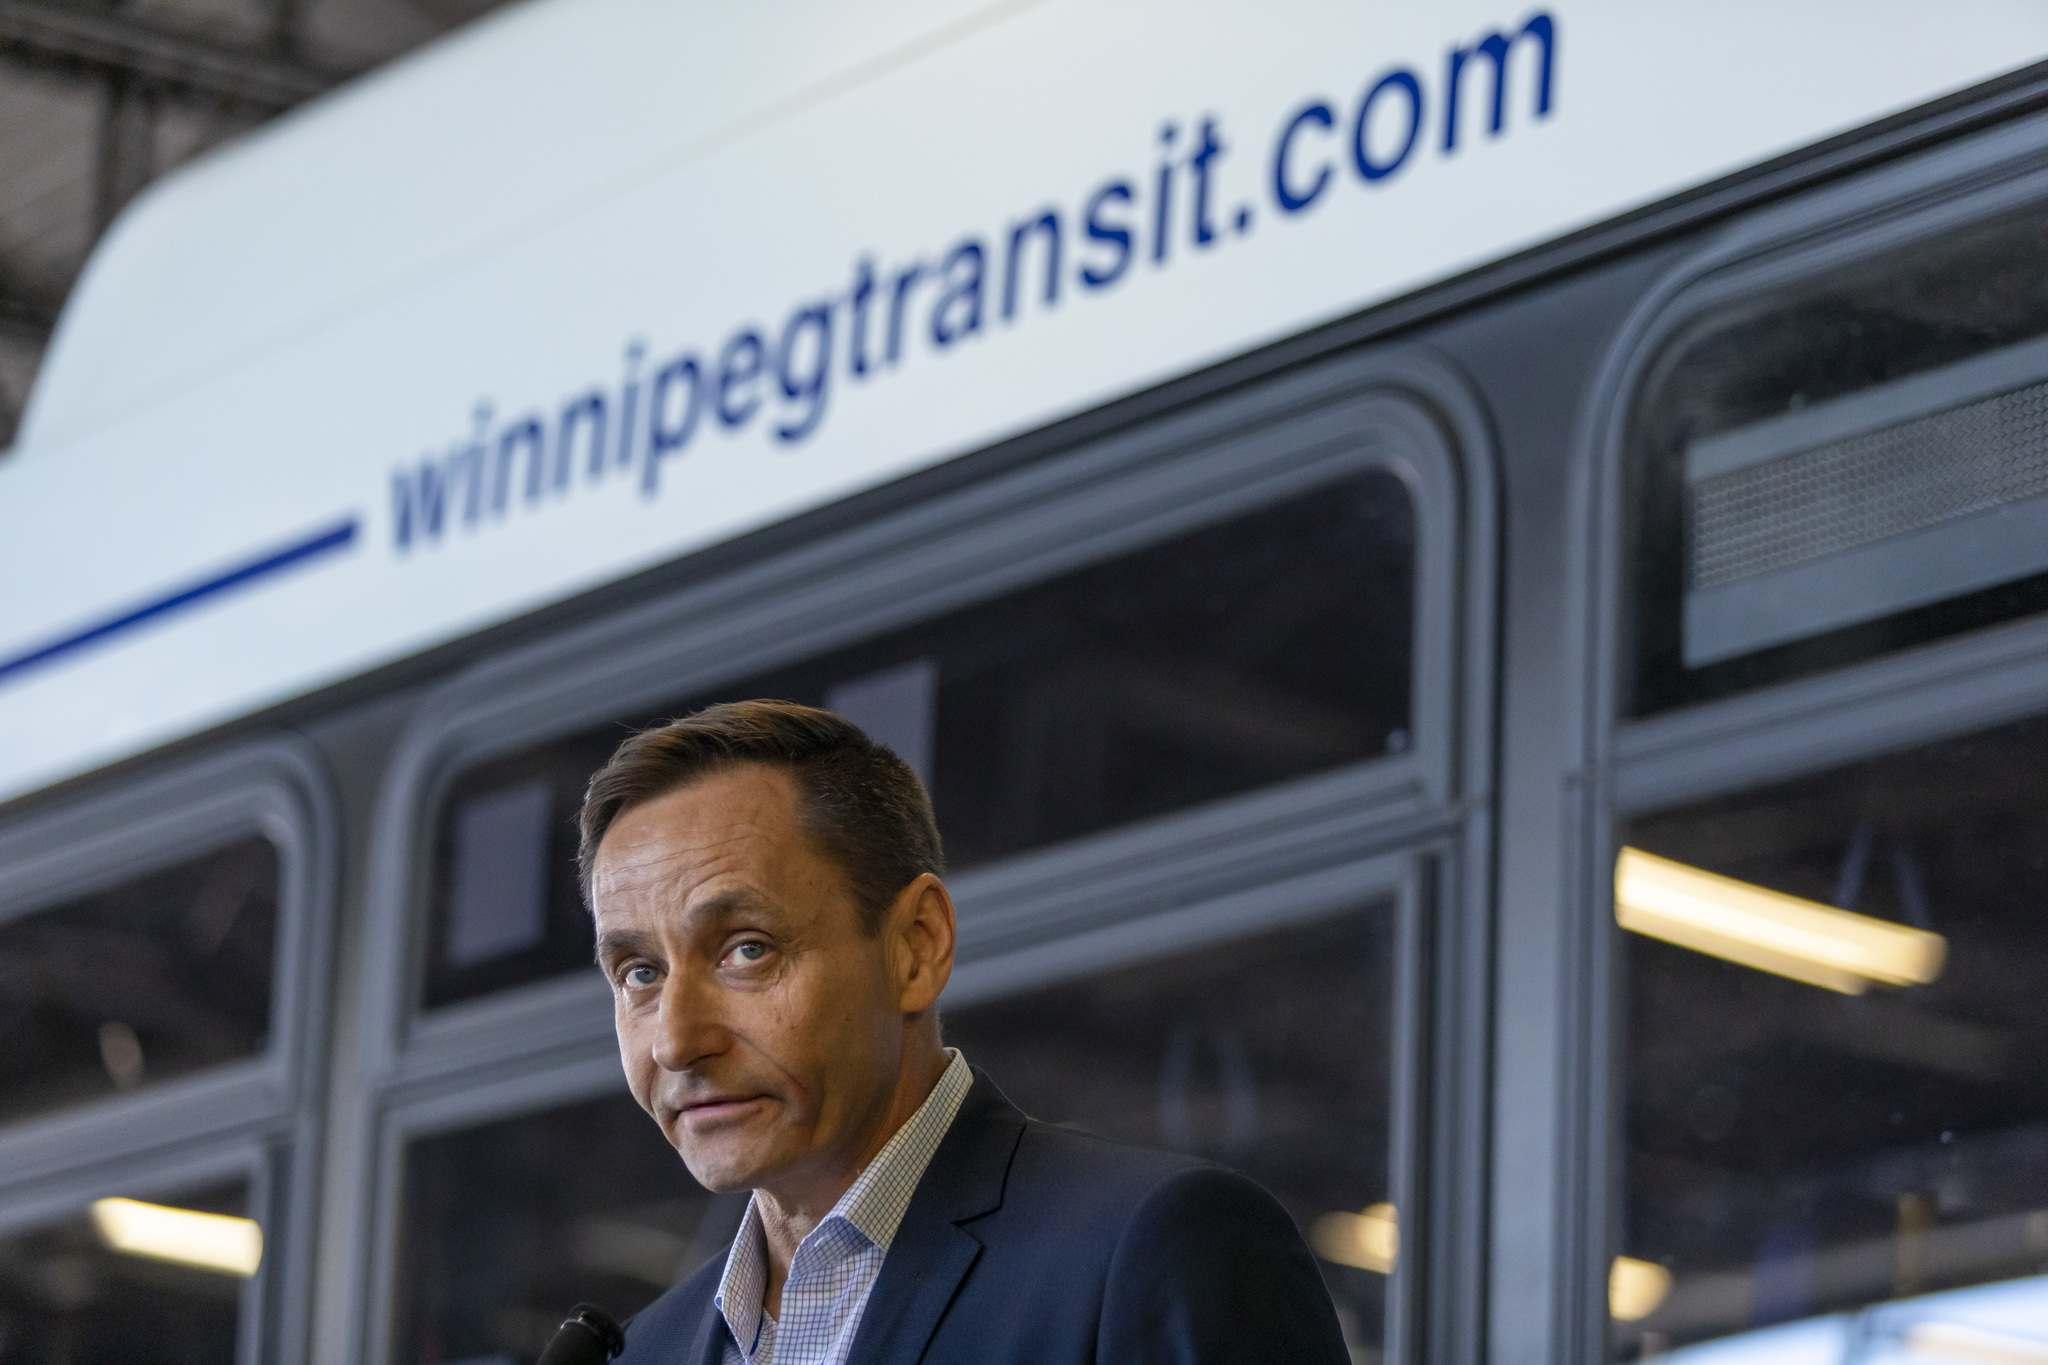 """The most common would be more serious types of incidents like assaults,"" Winnipeg Transit operations manager Randy Tonnellier said. (Sasha Sefter / Free Press files)"